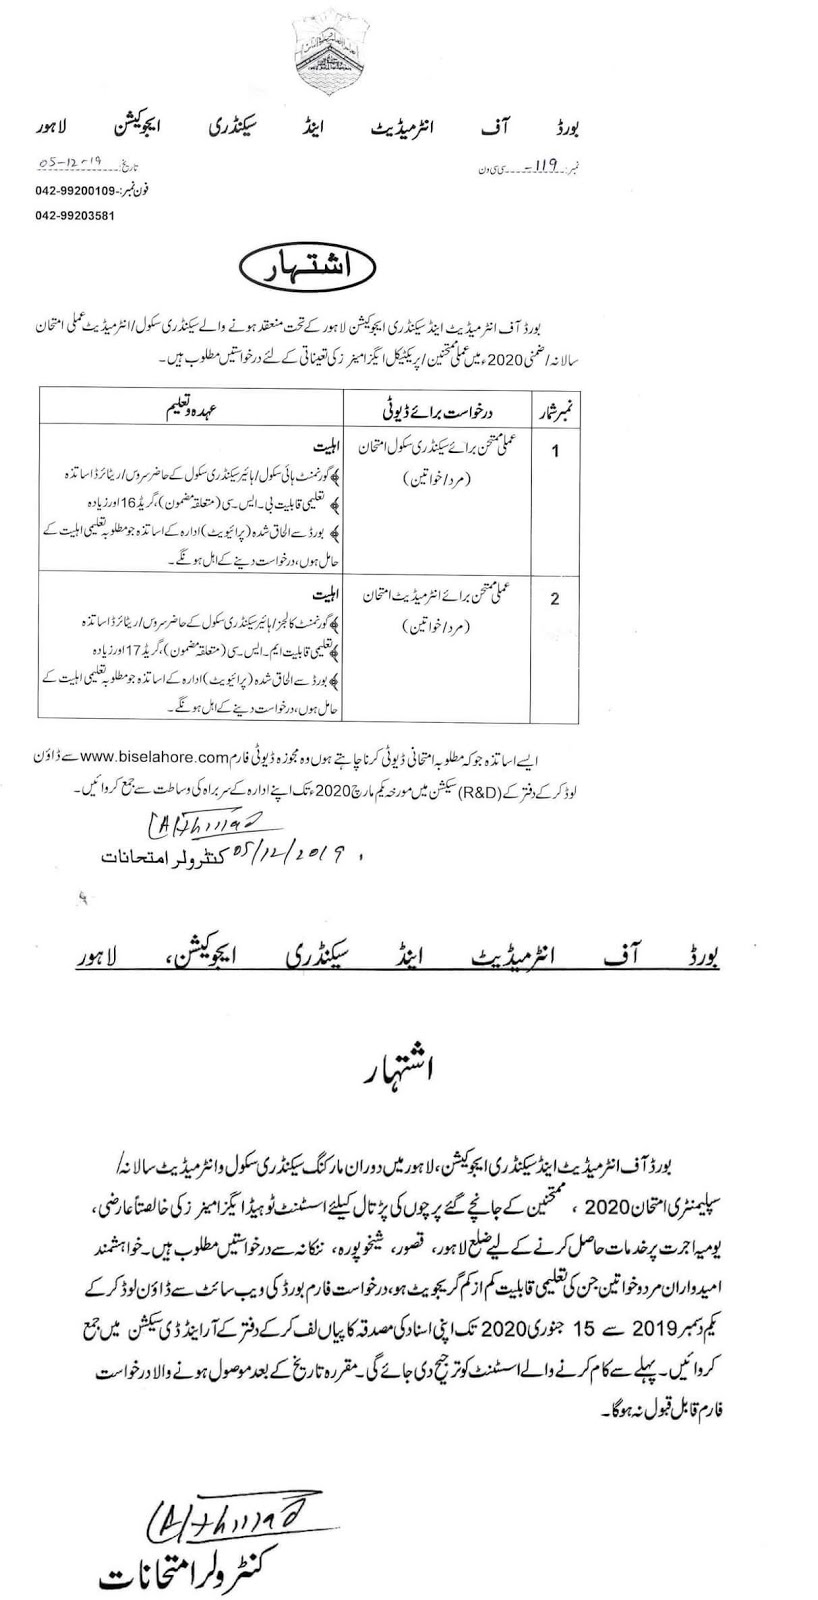 Metric Board Paper Checking Jobs 2020 Apply Now bise lahore 9th result 2019 bise lahore roll number slip 2019 bise lahore matric result 2019 bise lahore result 2019 paper checking jobs in lahore board bise lahore 2nd year result 2019 bise lahore paper checking jobs lahore board jobs 2019